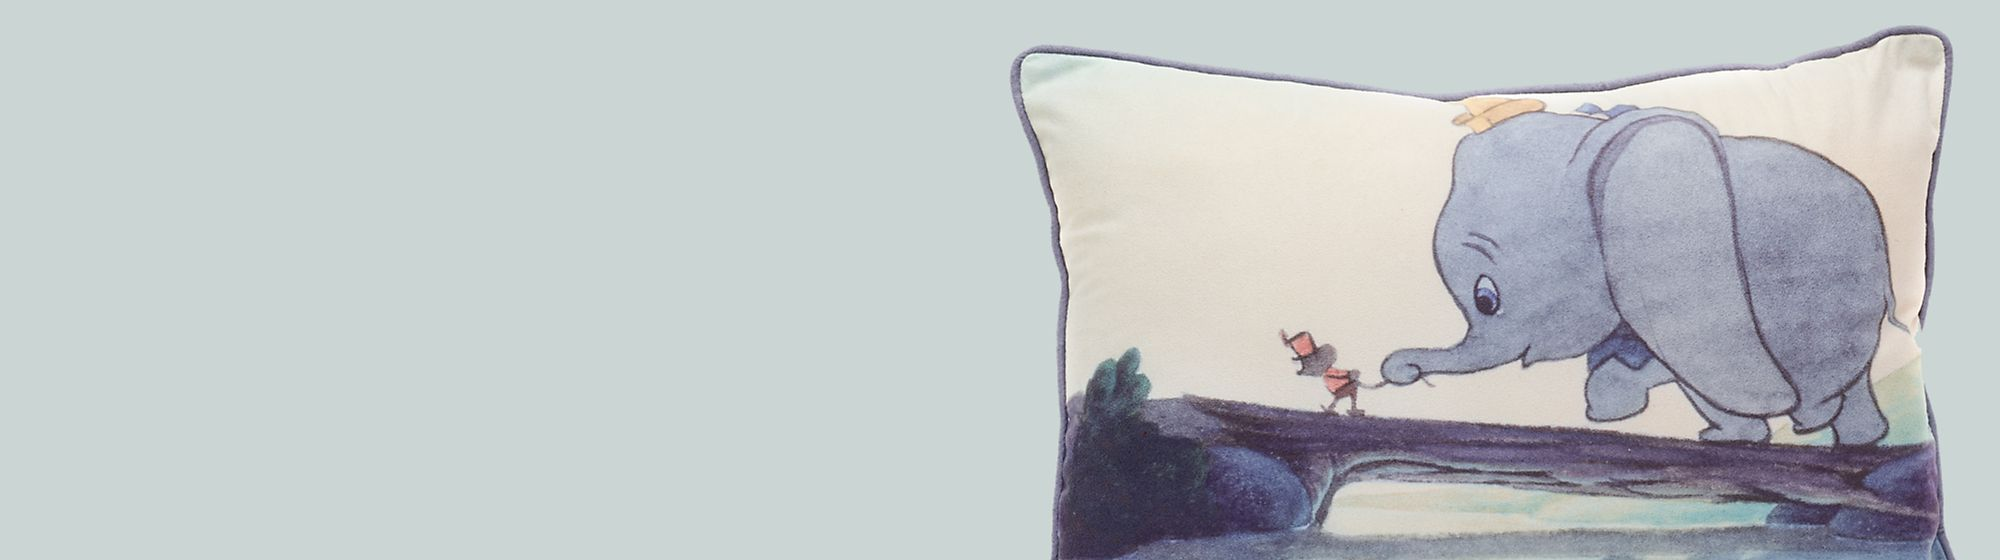 Home Furnishings Add some magic to your home with our range of homeware including art, cushions, ornaments and more